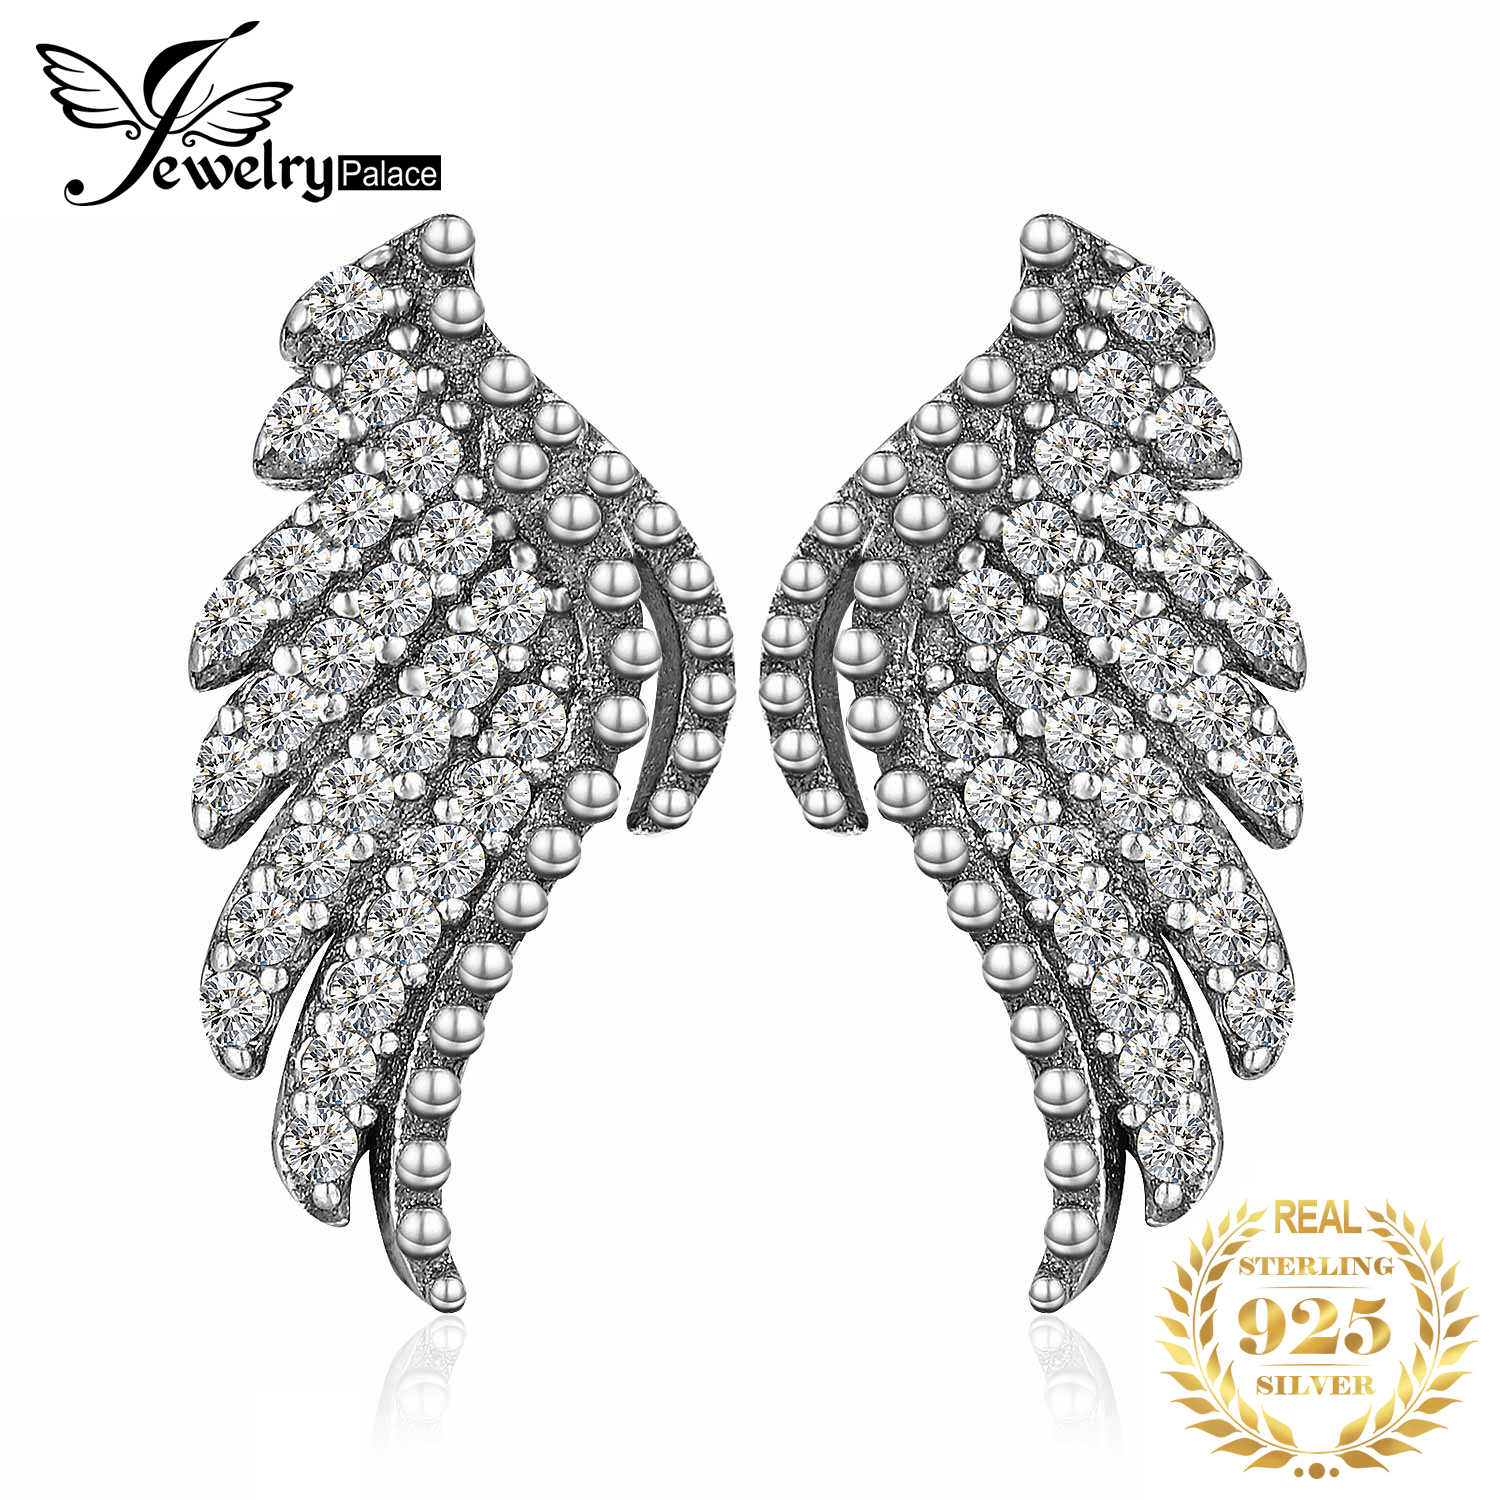 JewelryPalace Angel Wing CZ Stud Earrings 925 Sterling Silver Earrings For Women Girls Korean Earrings Fashion Jewelry 2019